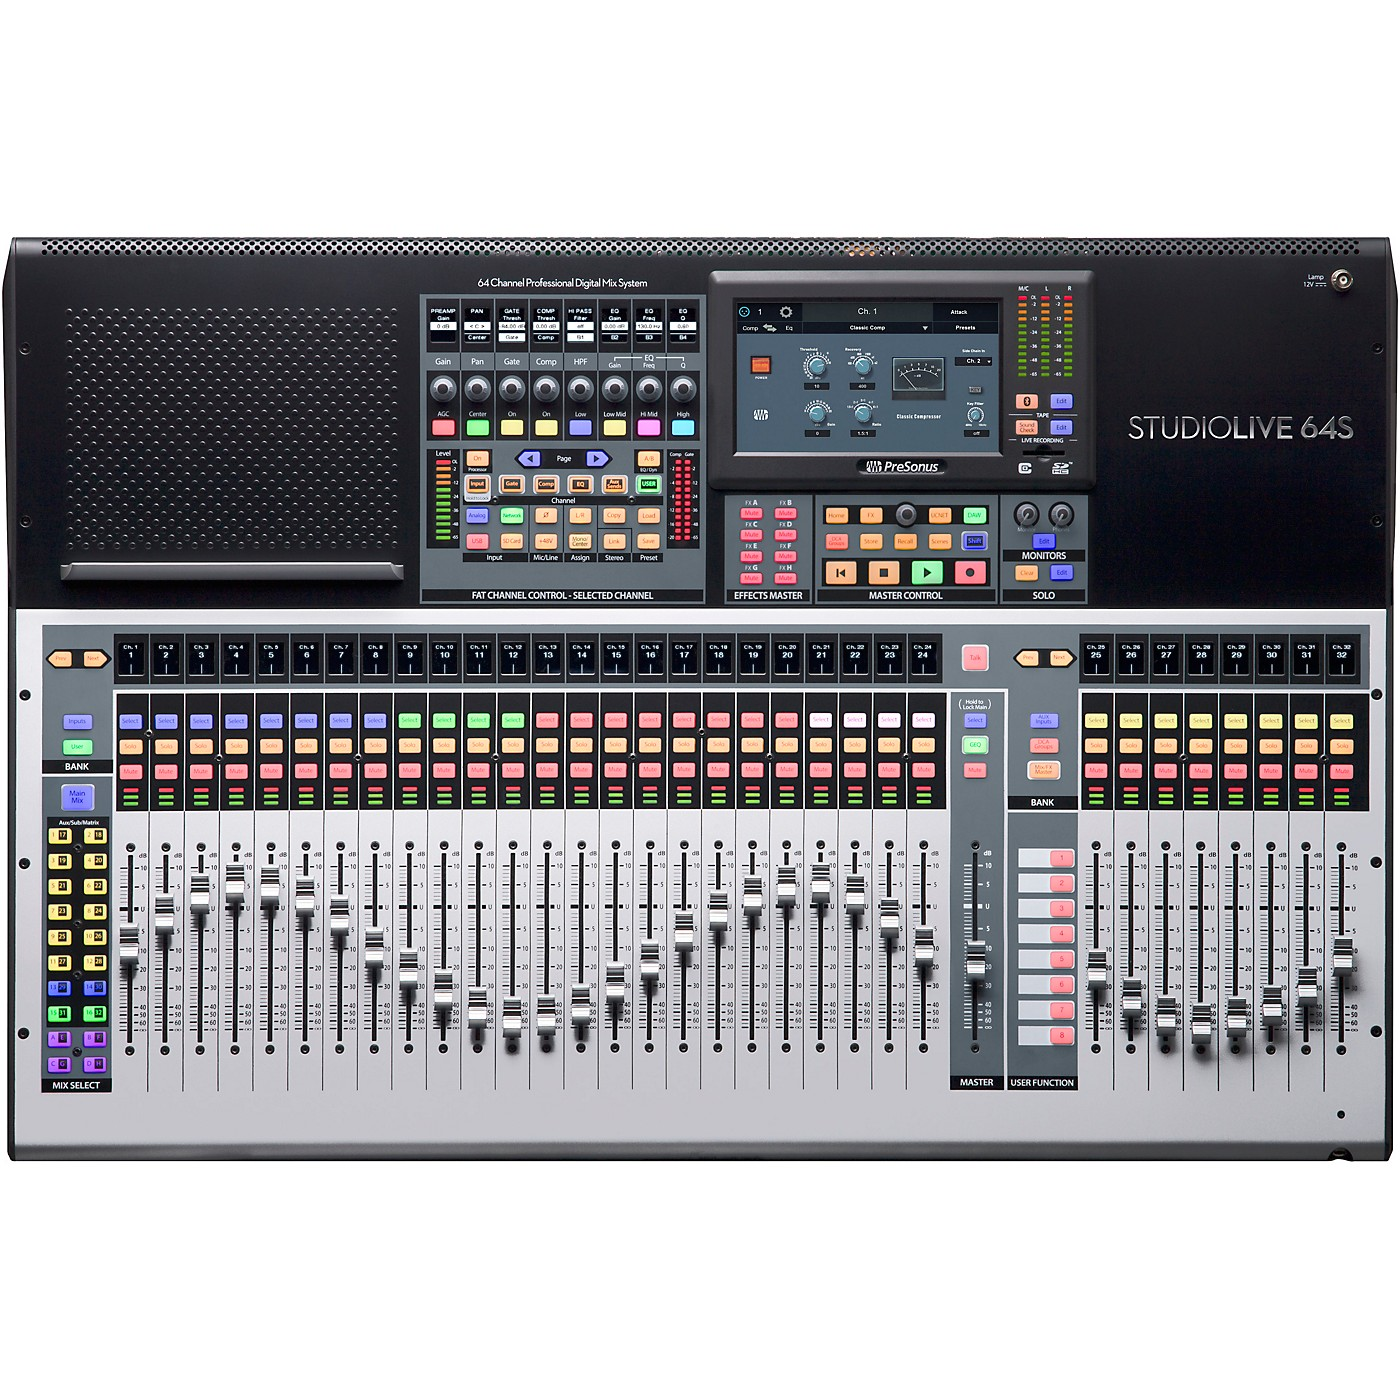 Presonus StudioLive 64S 64-Channel Mixer with 43 Mix Busses, 33 Motorized Faders and 64x64 USB Interface thumbnail